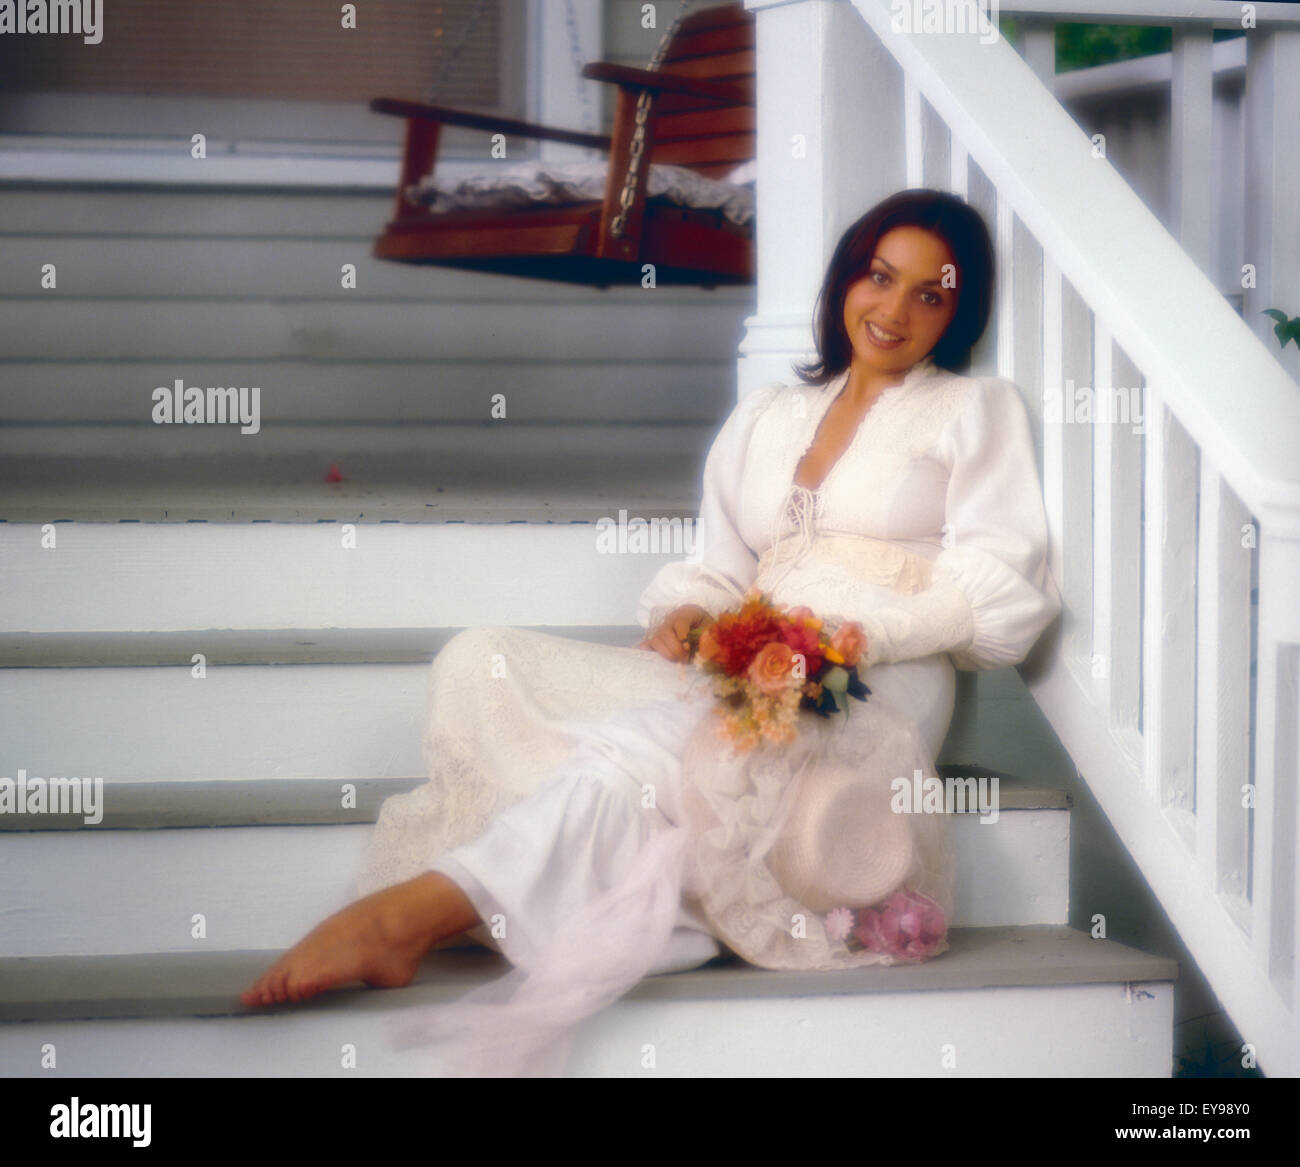 Pretty Woman Sitting On The Steps Of A Wooden House Wearing